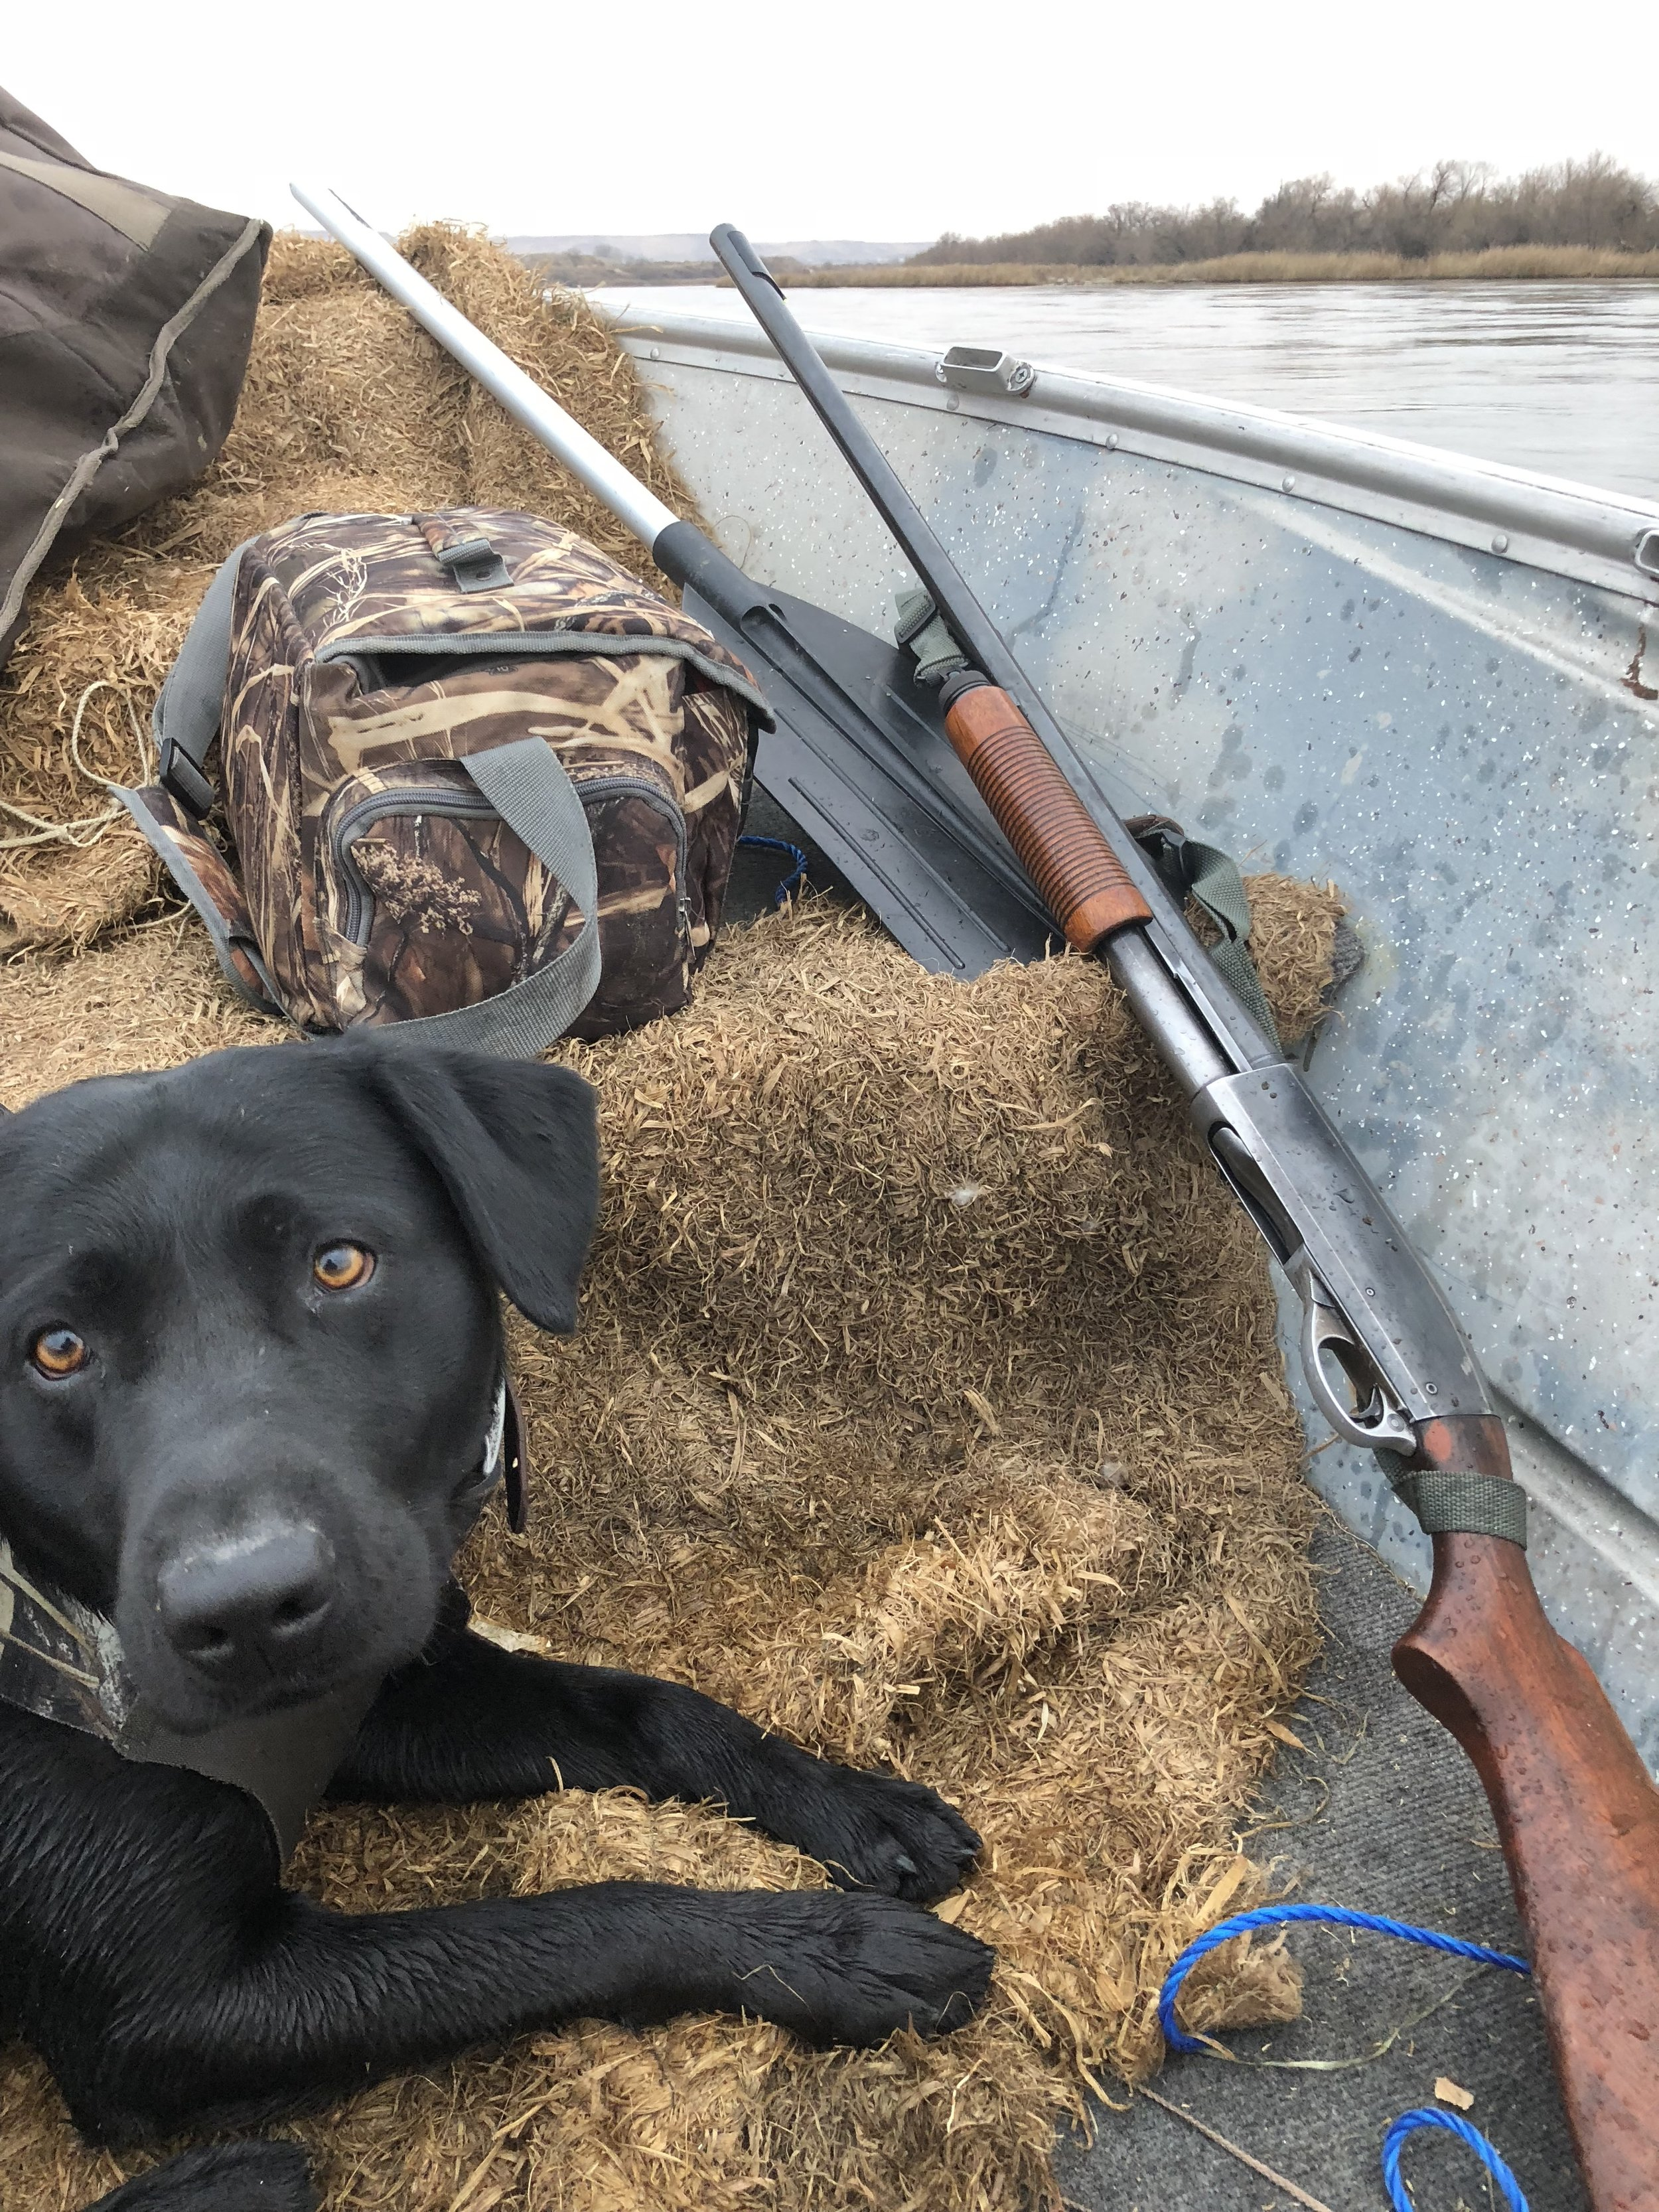 Tanker on the boat last season on a pretty bleak day of hunting. 2017 was a tough year for waterfowl hunting for sure. But we still managed to have some great days in the field!